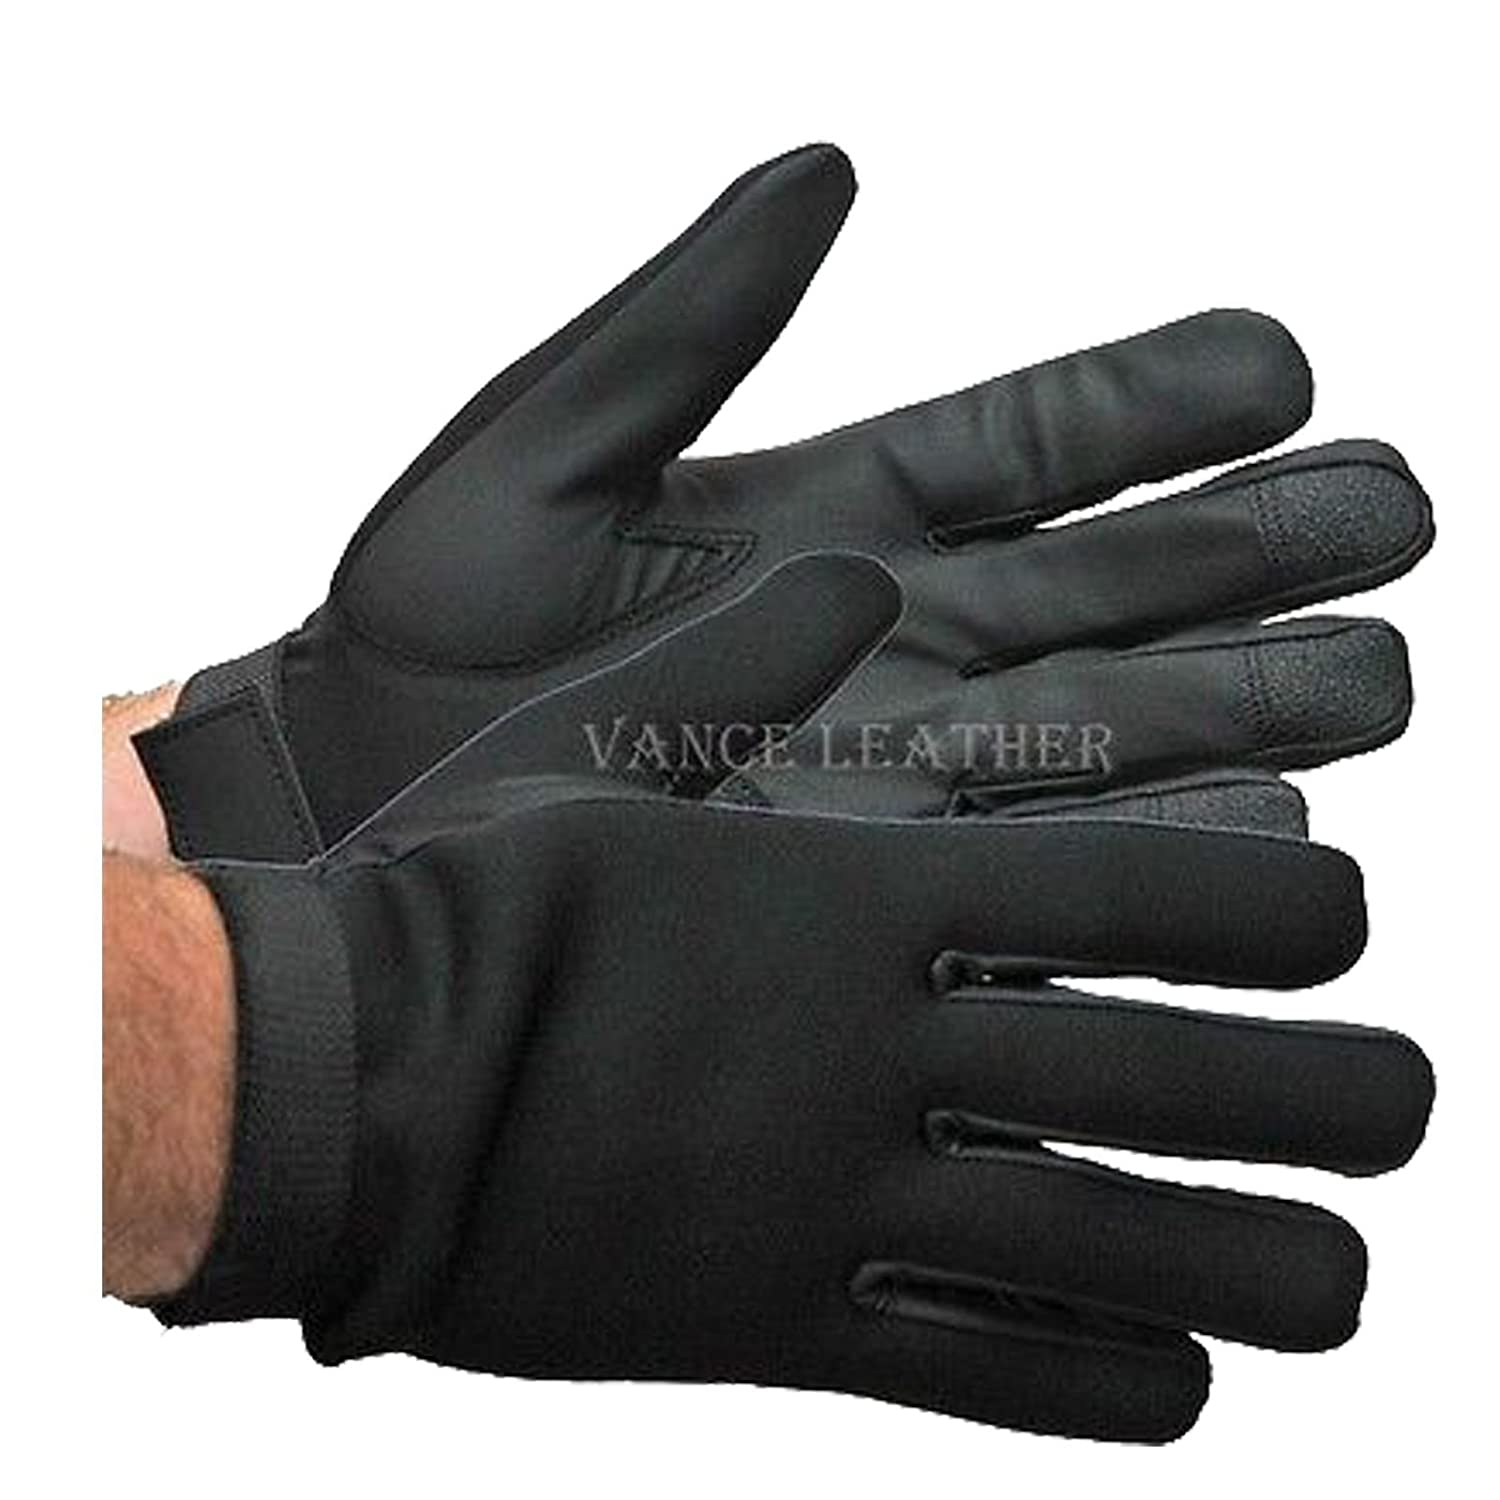 Motorcycle Riding Neoprene Tactical Gel Palm Light Weight Textile Gloves Mens